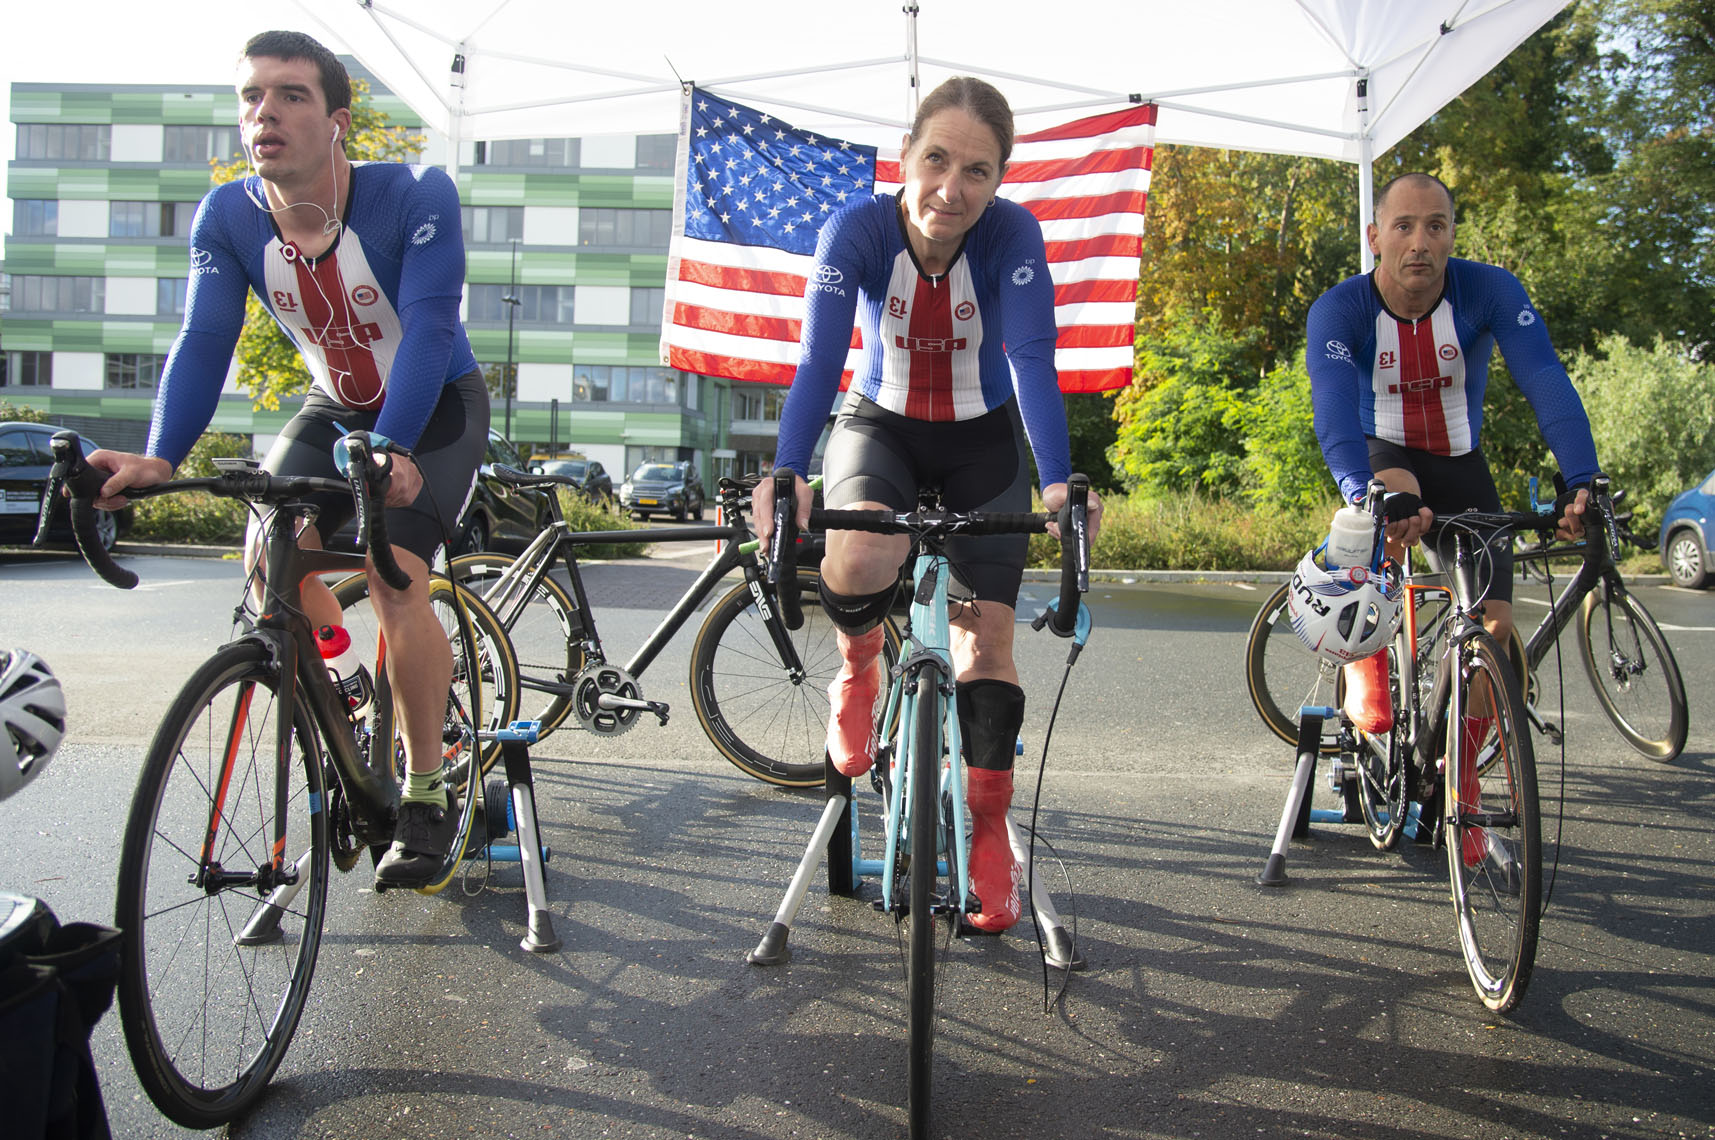 USA Warmup, 2019 Paracycling World Championships